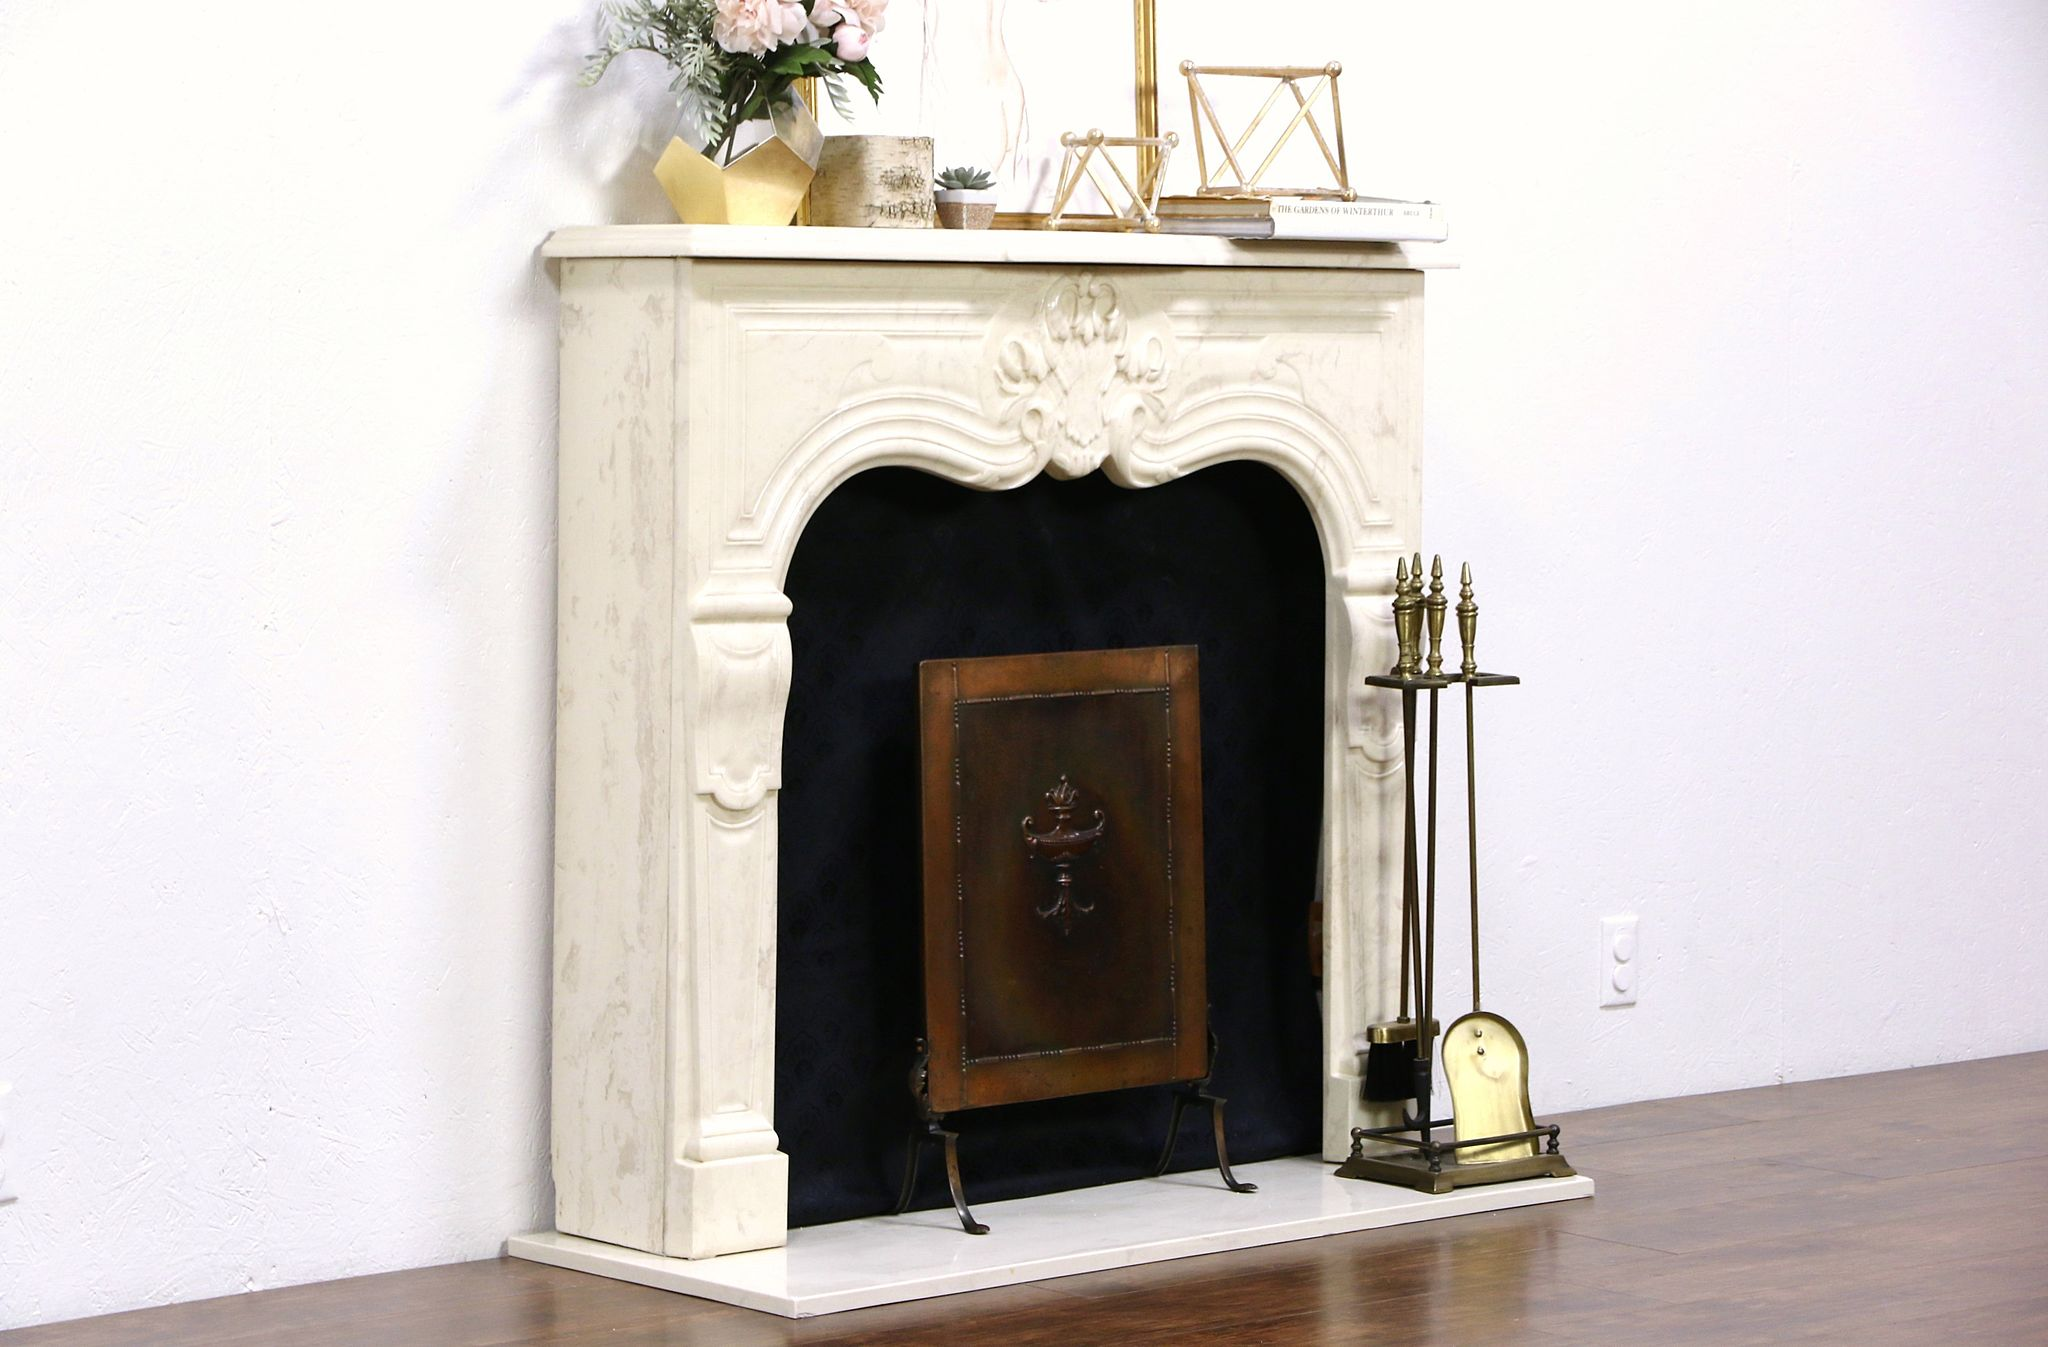 Sold cultured faux marble fireplace mantel surround for Faux marble fireplace mantels